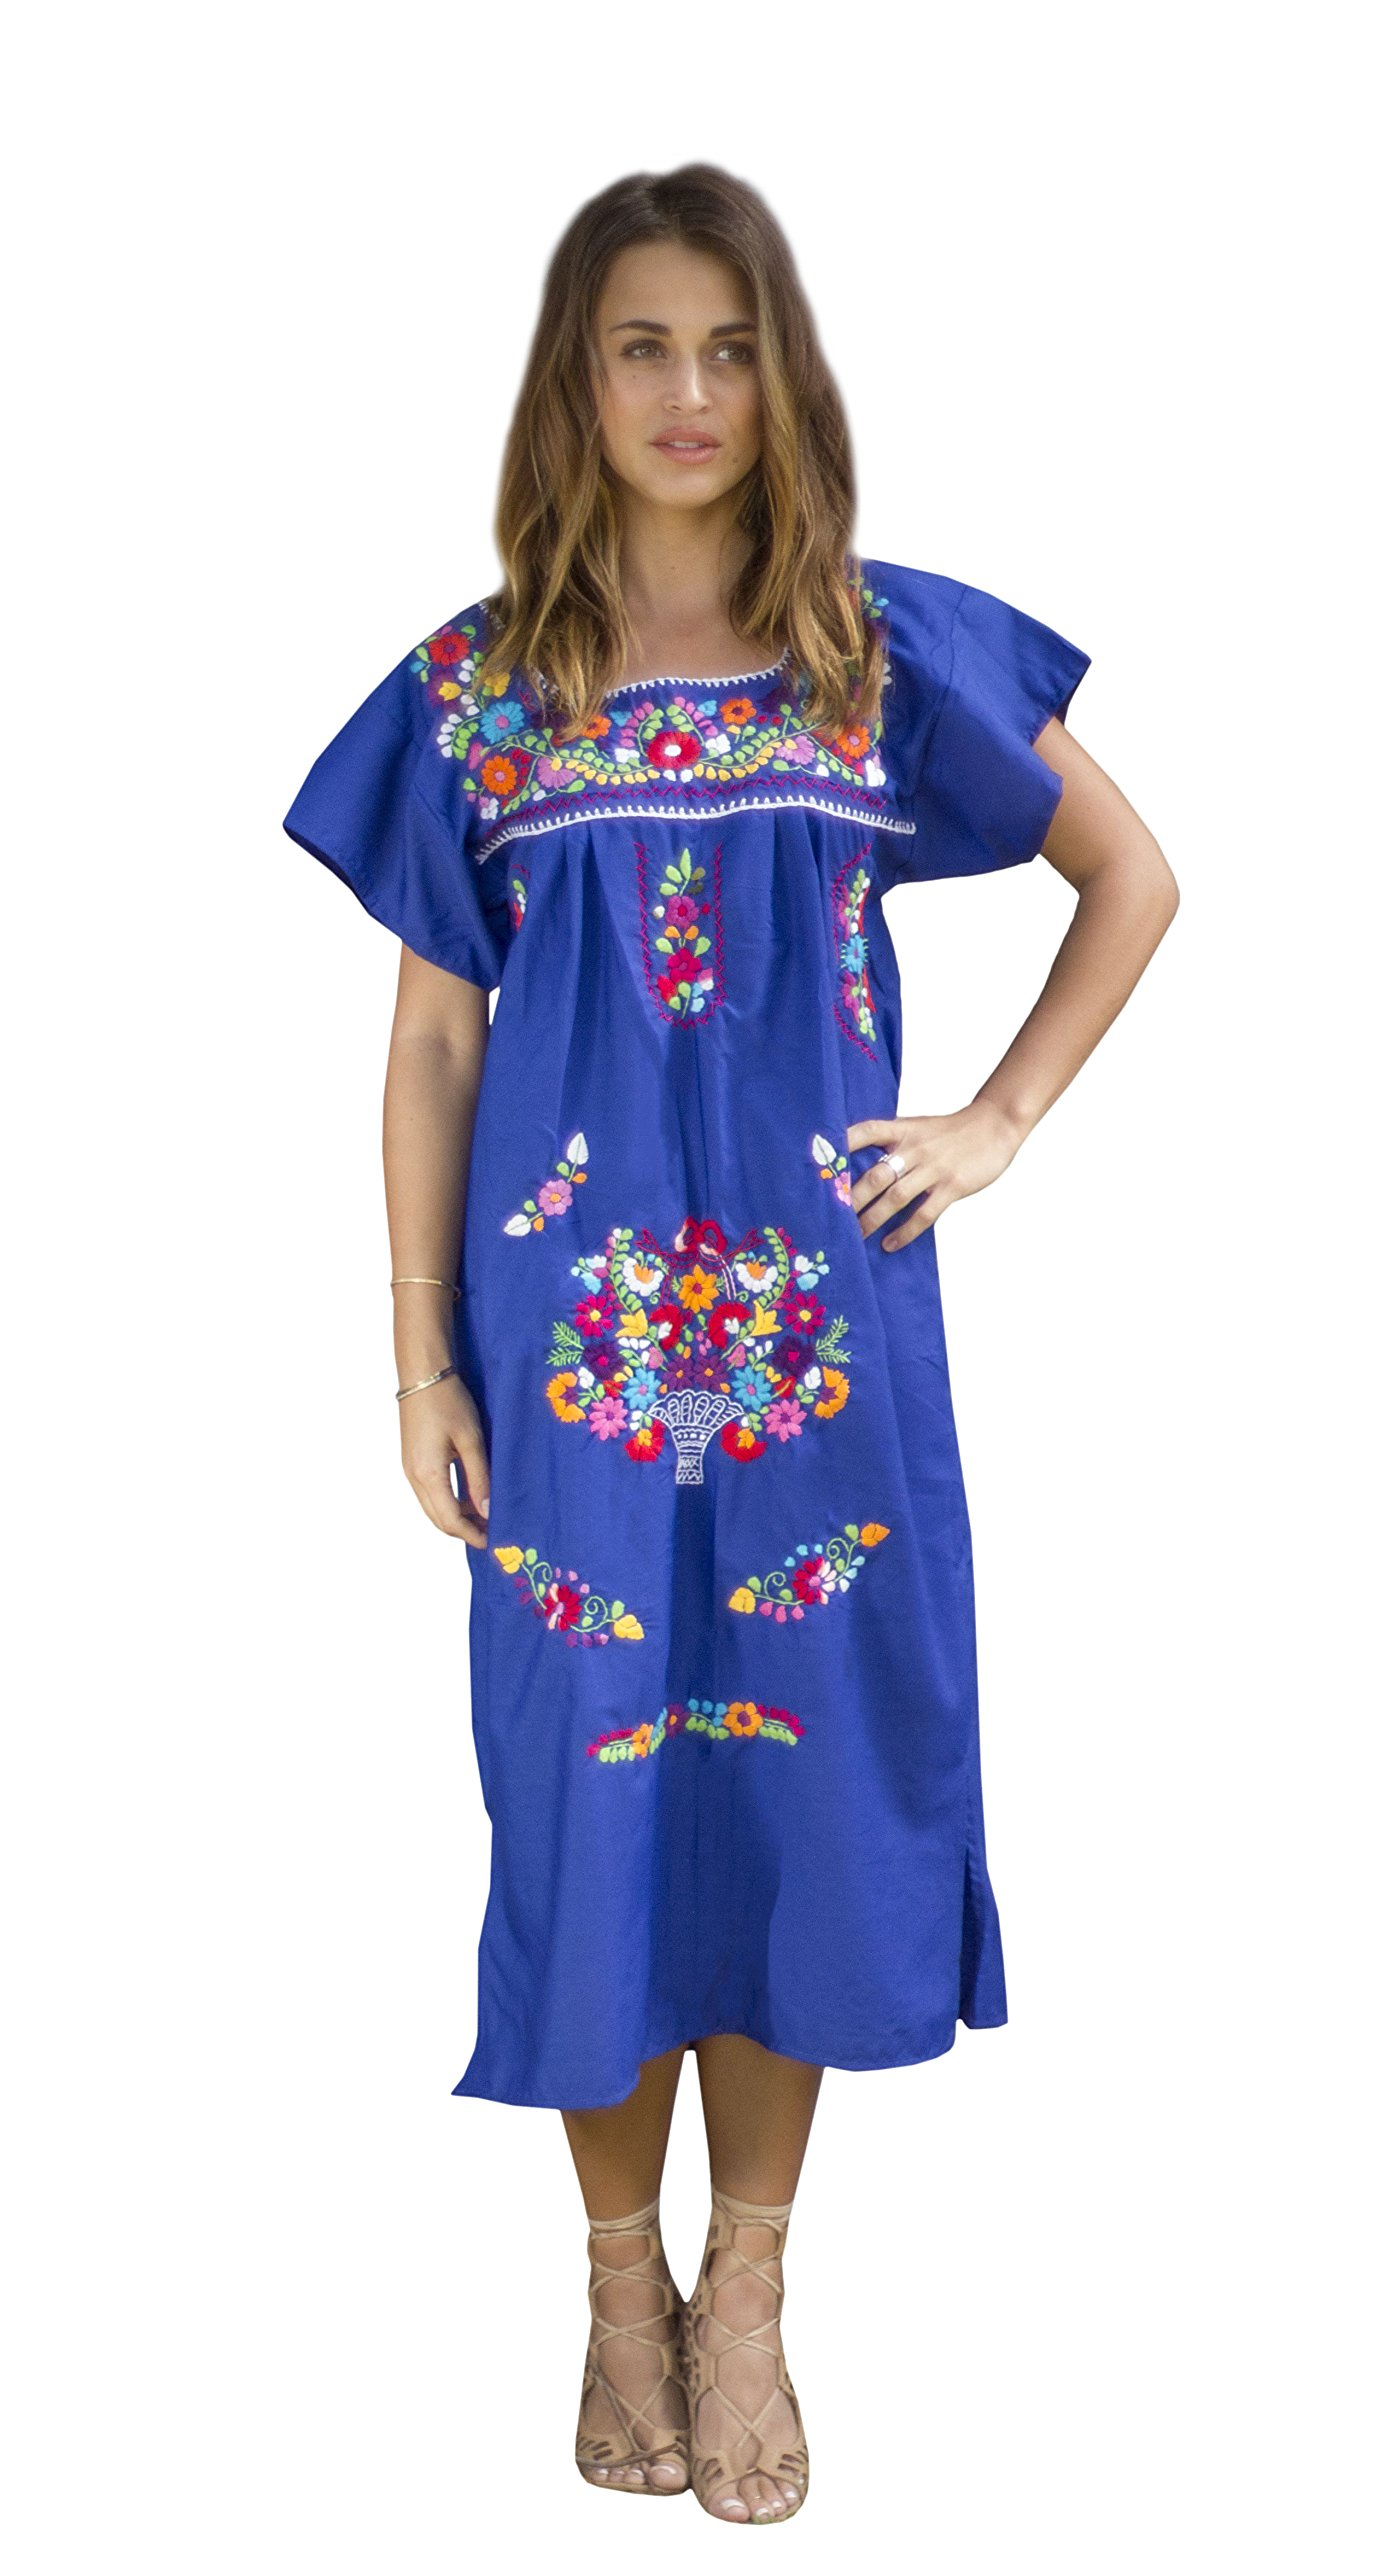 Available at Amazon: Liliana Cruz Embroidered Mexican Peasant Dress